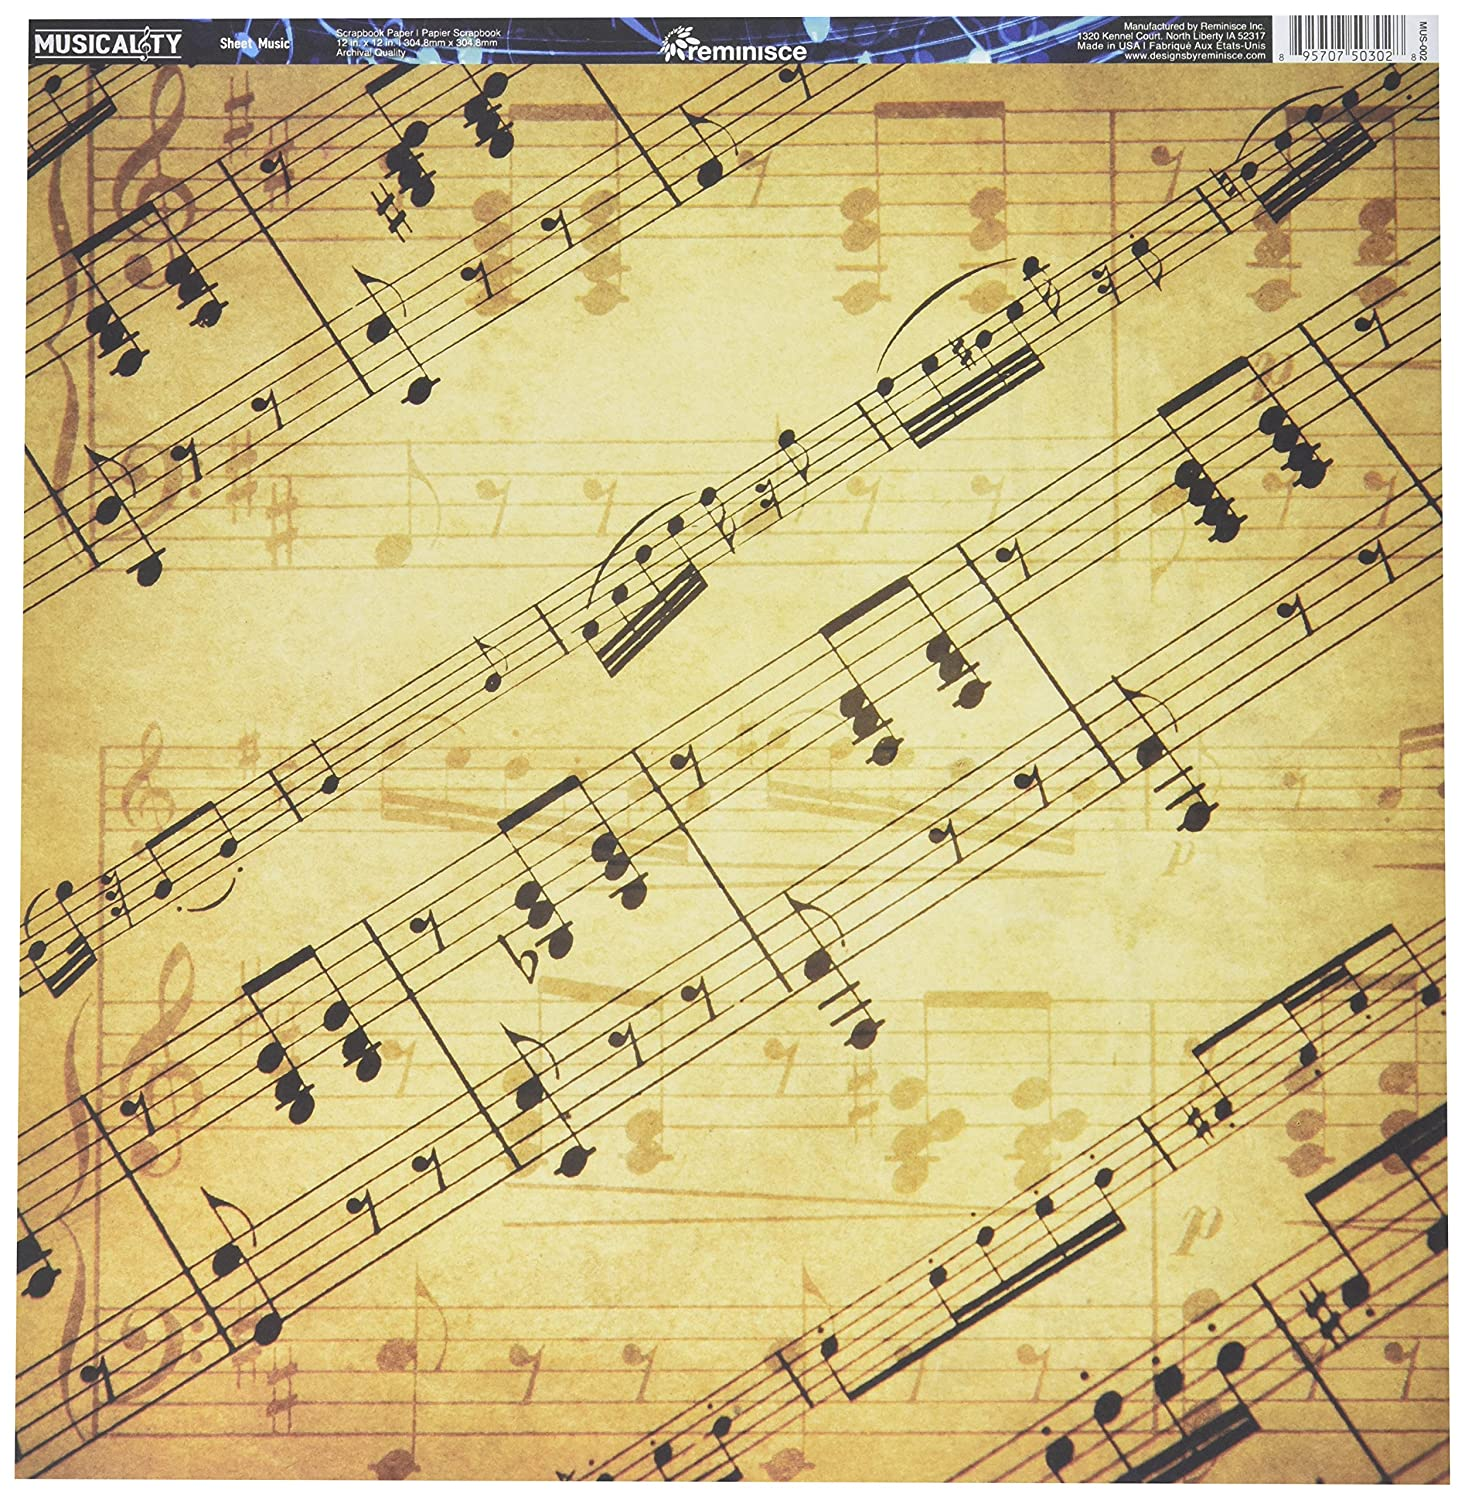 Amazon Reminisce Mus 002 25 Sheet Music Musicality Double Sided